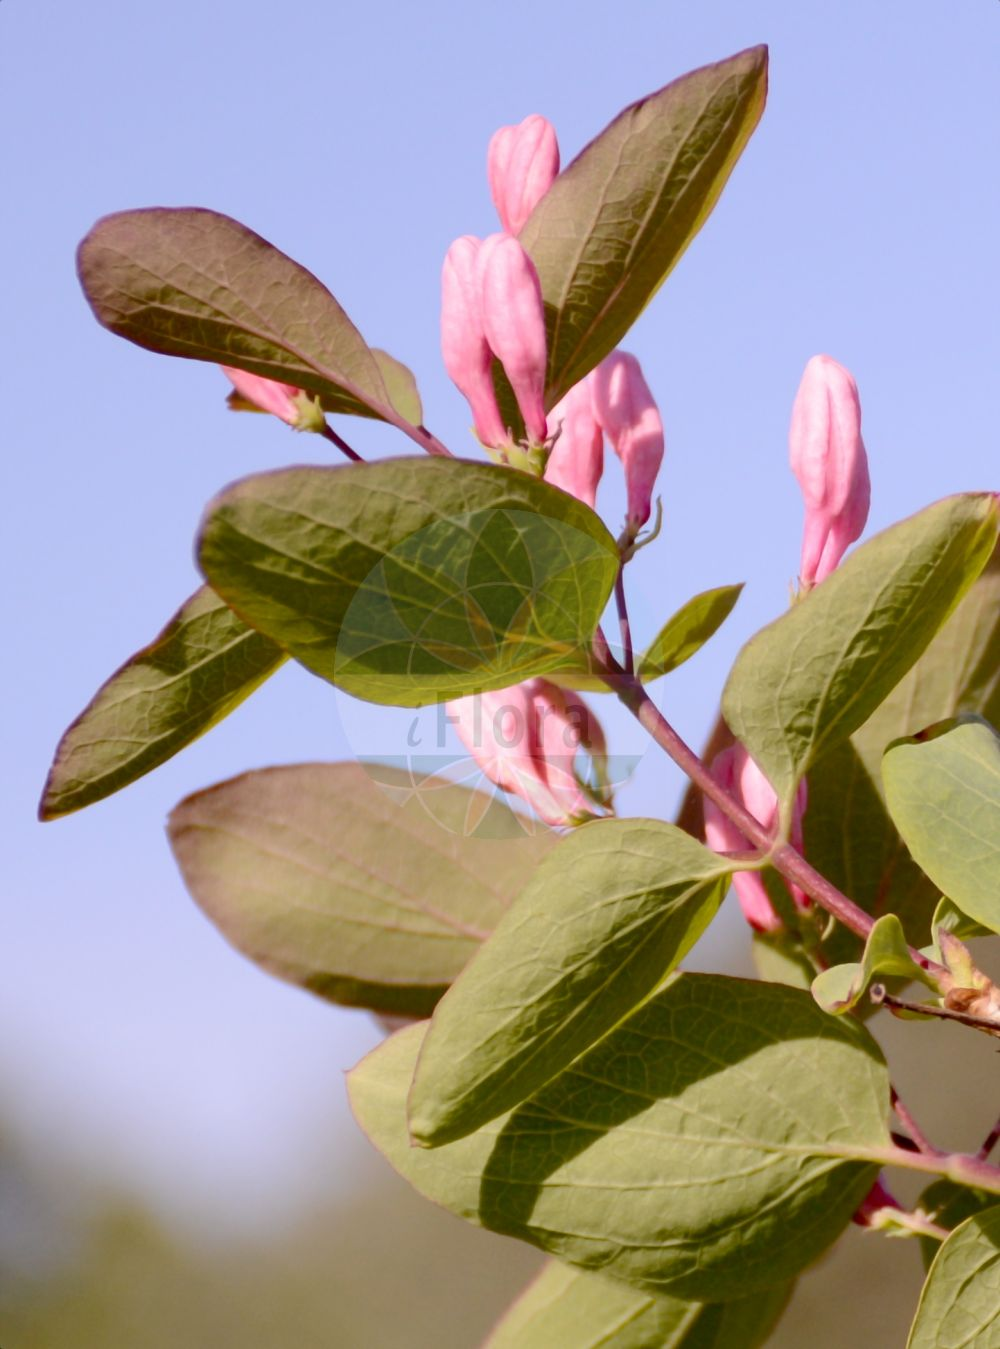 Foto von Lonicera tatarica. Das Bild zeigt Blatt und Bluete. Das Foto wurde in Marburg, Hessen, Deutschland aufgenommen. ---- Photo of Lonicera tatarica.The image is showing leaf and flower.The picture was taken in Marburg, Hesse, Germany.(Lonicera tatarica,Lonicera benjaminii,,Lonicera,Heckenkirsche,Honeysuckle,Caprifoliaceae,Geissblattgewaechse,Honeysuckle family,Blatt,Bluete,leaf,flower)